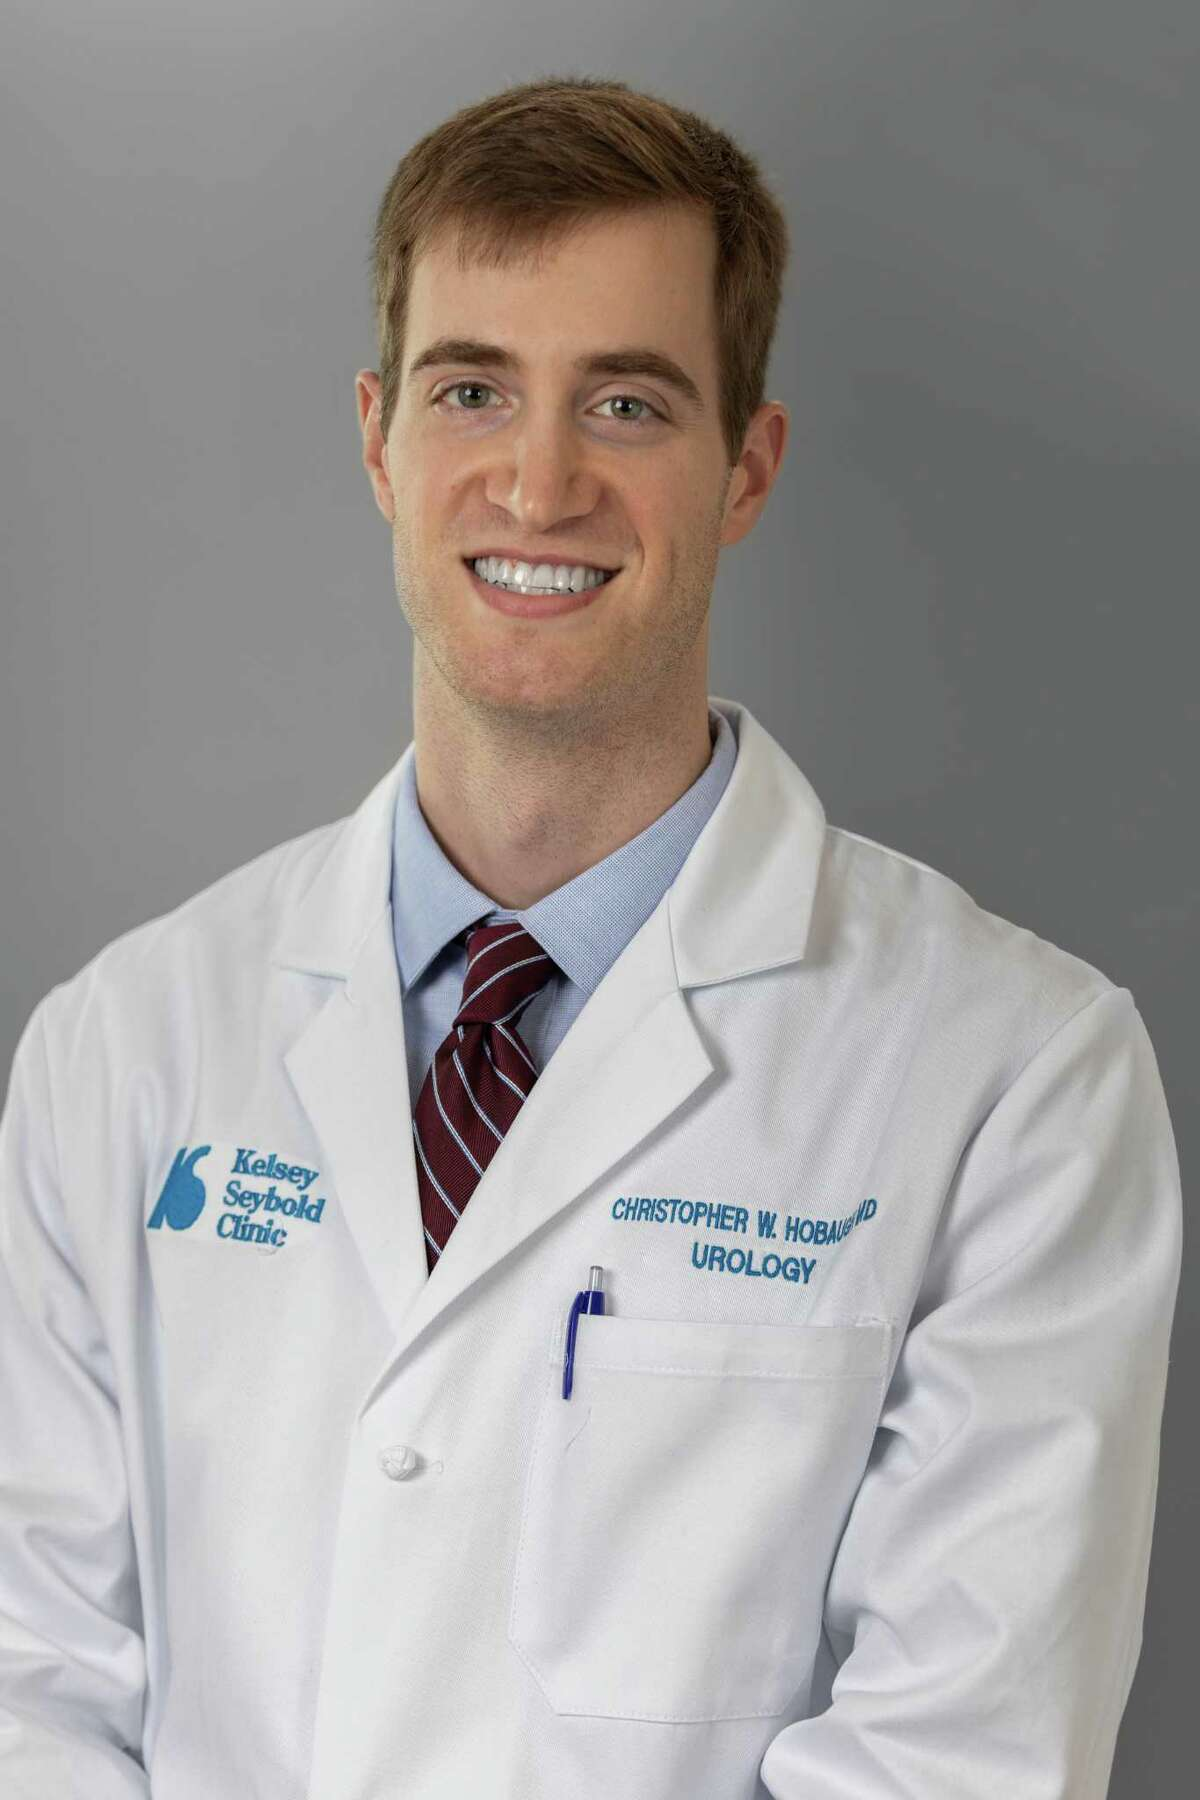 Dr Christopher Hobaugh, a urologist with Kelsey-Seybold Clinic in The Woodlands, says focusing in the early warning signs of testicular and prostate cancers can help catch them before the conditions morph into more problematic situations.